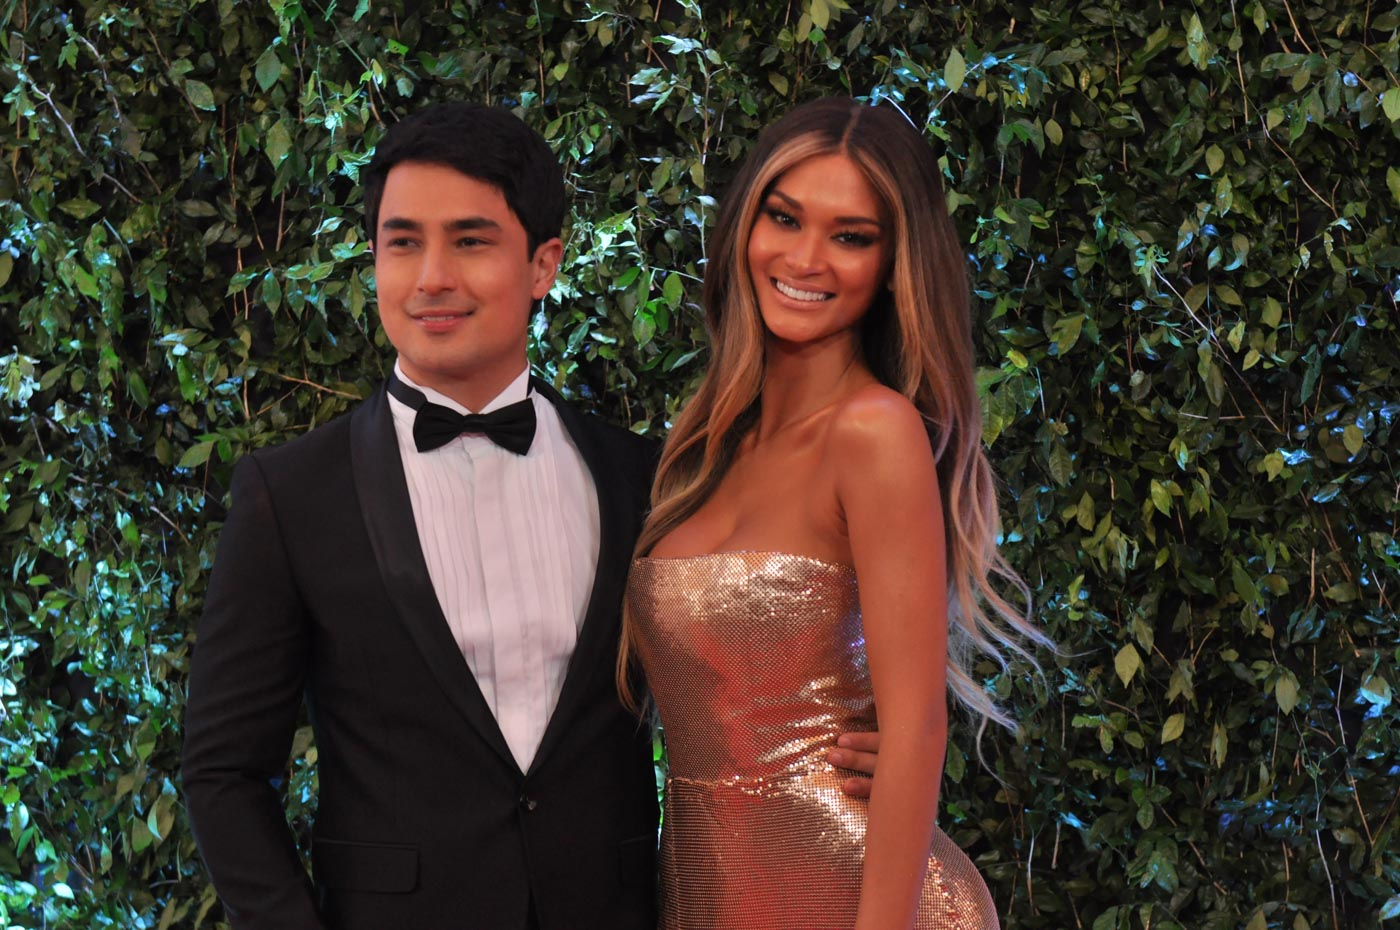 BALL DATE. Marlon Stockinger and Pia Wurtzbach walk the ABS-CBN Ball red carpet together in September 2018. File photo by Jay Ganzon/Rappler